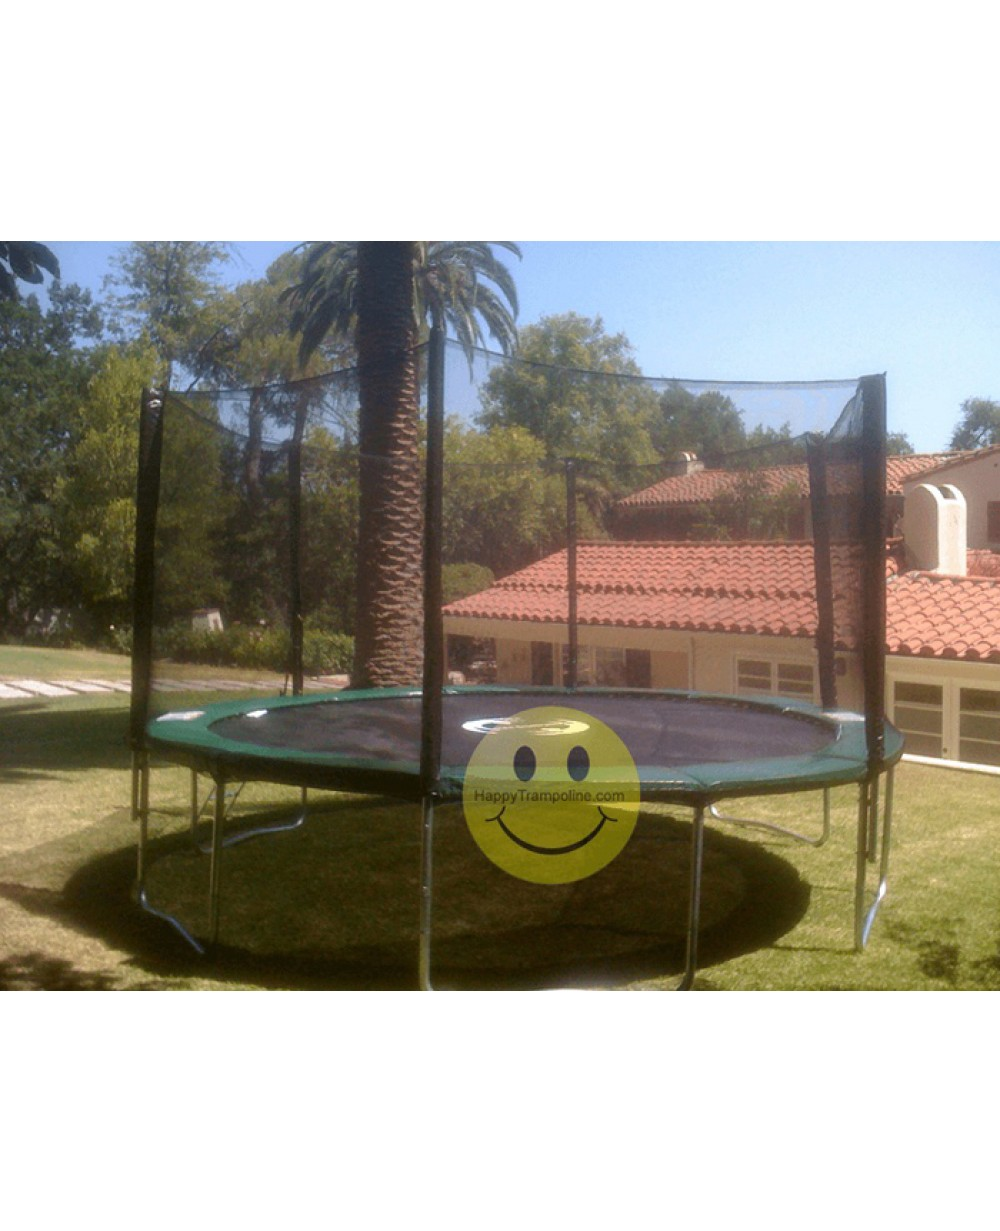 14 Ft Trampoline Combo Bounce Jump Safety: 14 Foot Best Heavy Duty Trampoline With Enclosure Safety